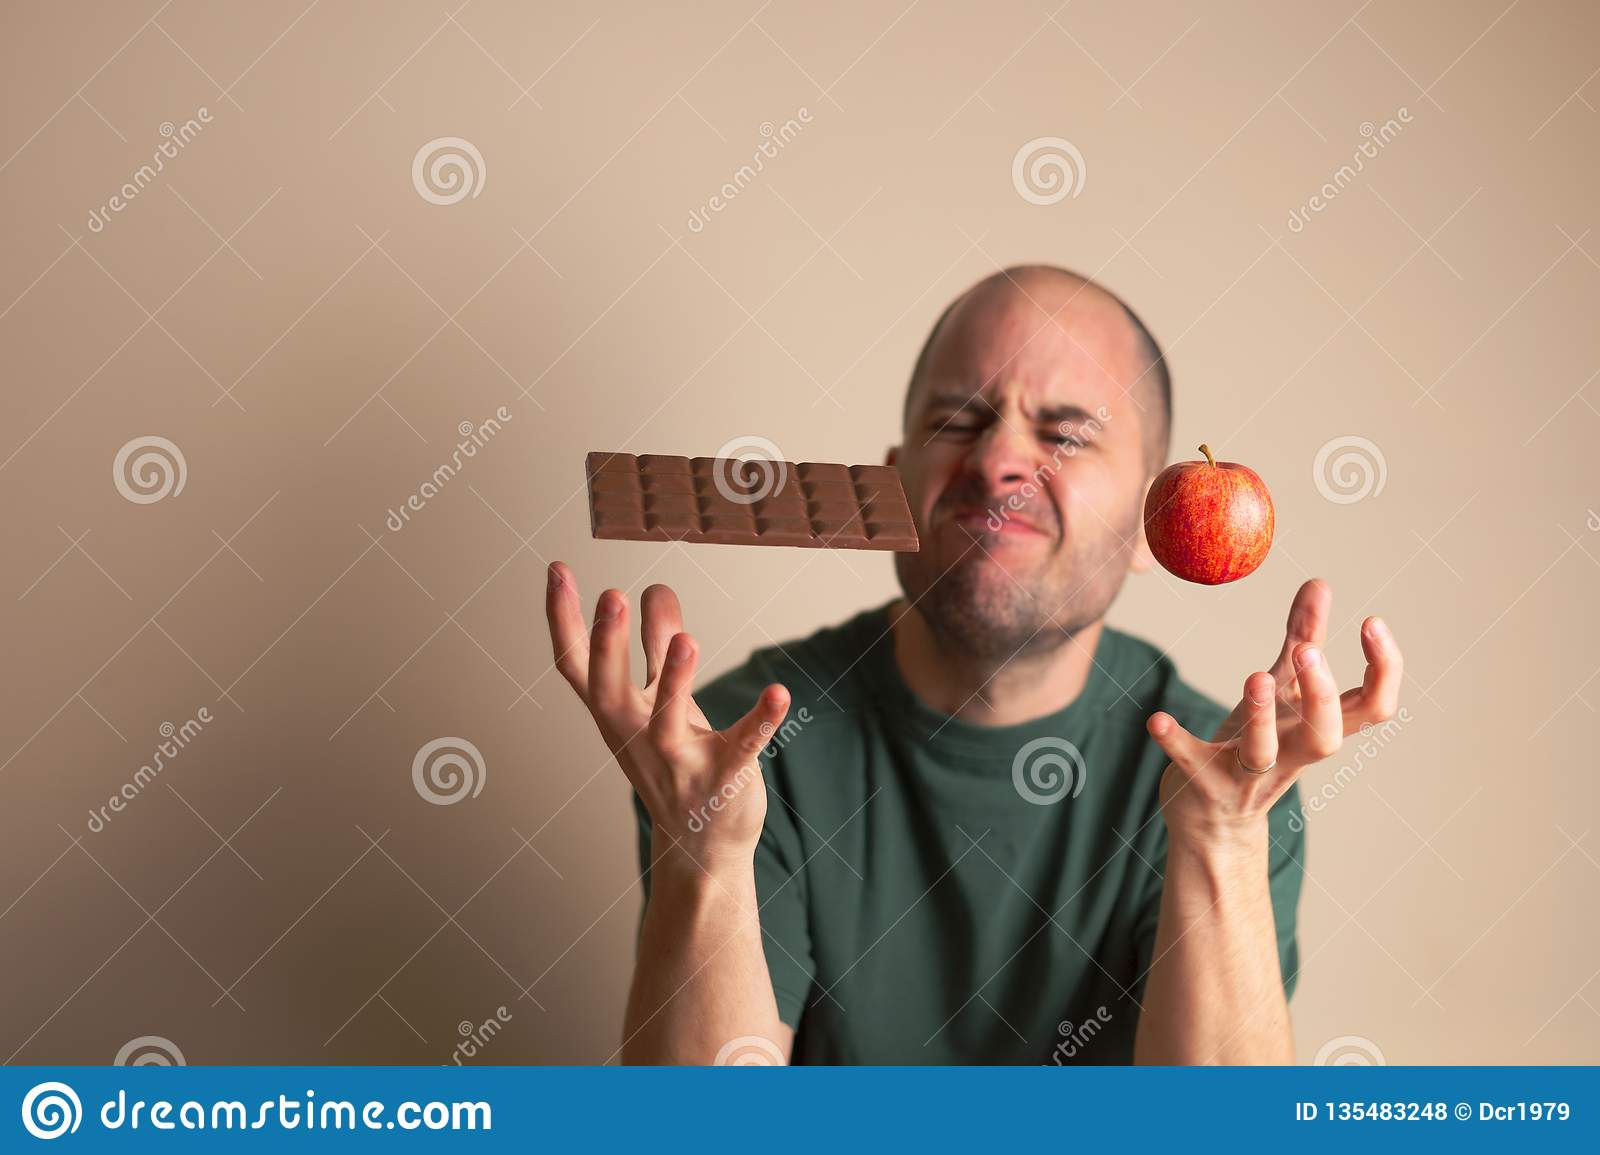 Man places one hand underneath a chocolate bar and the other underneath an apple